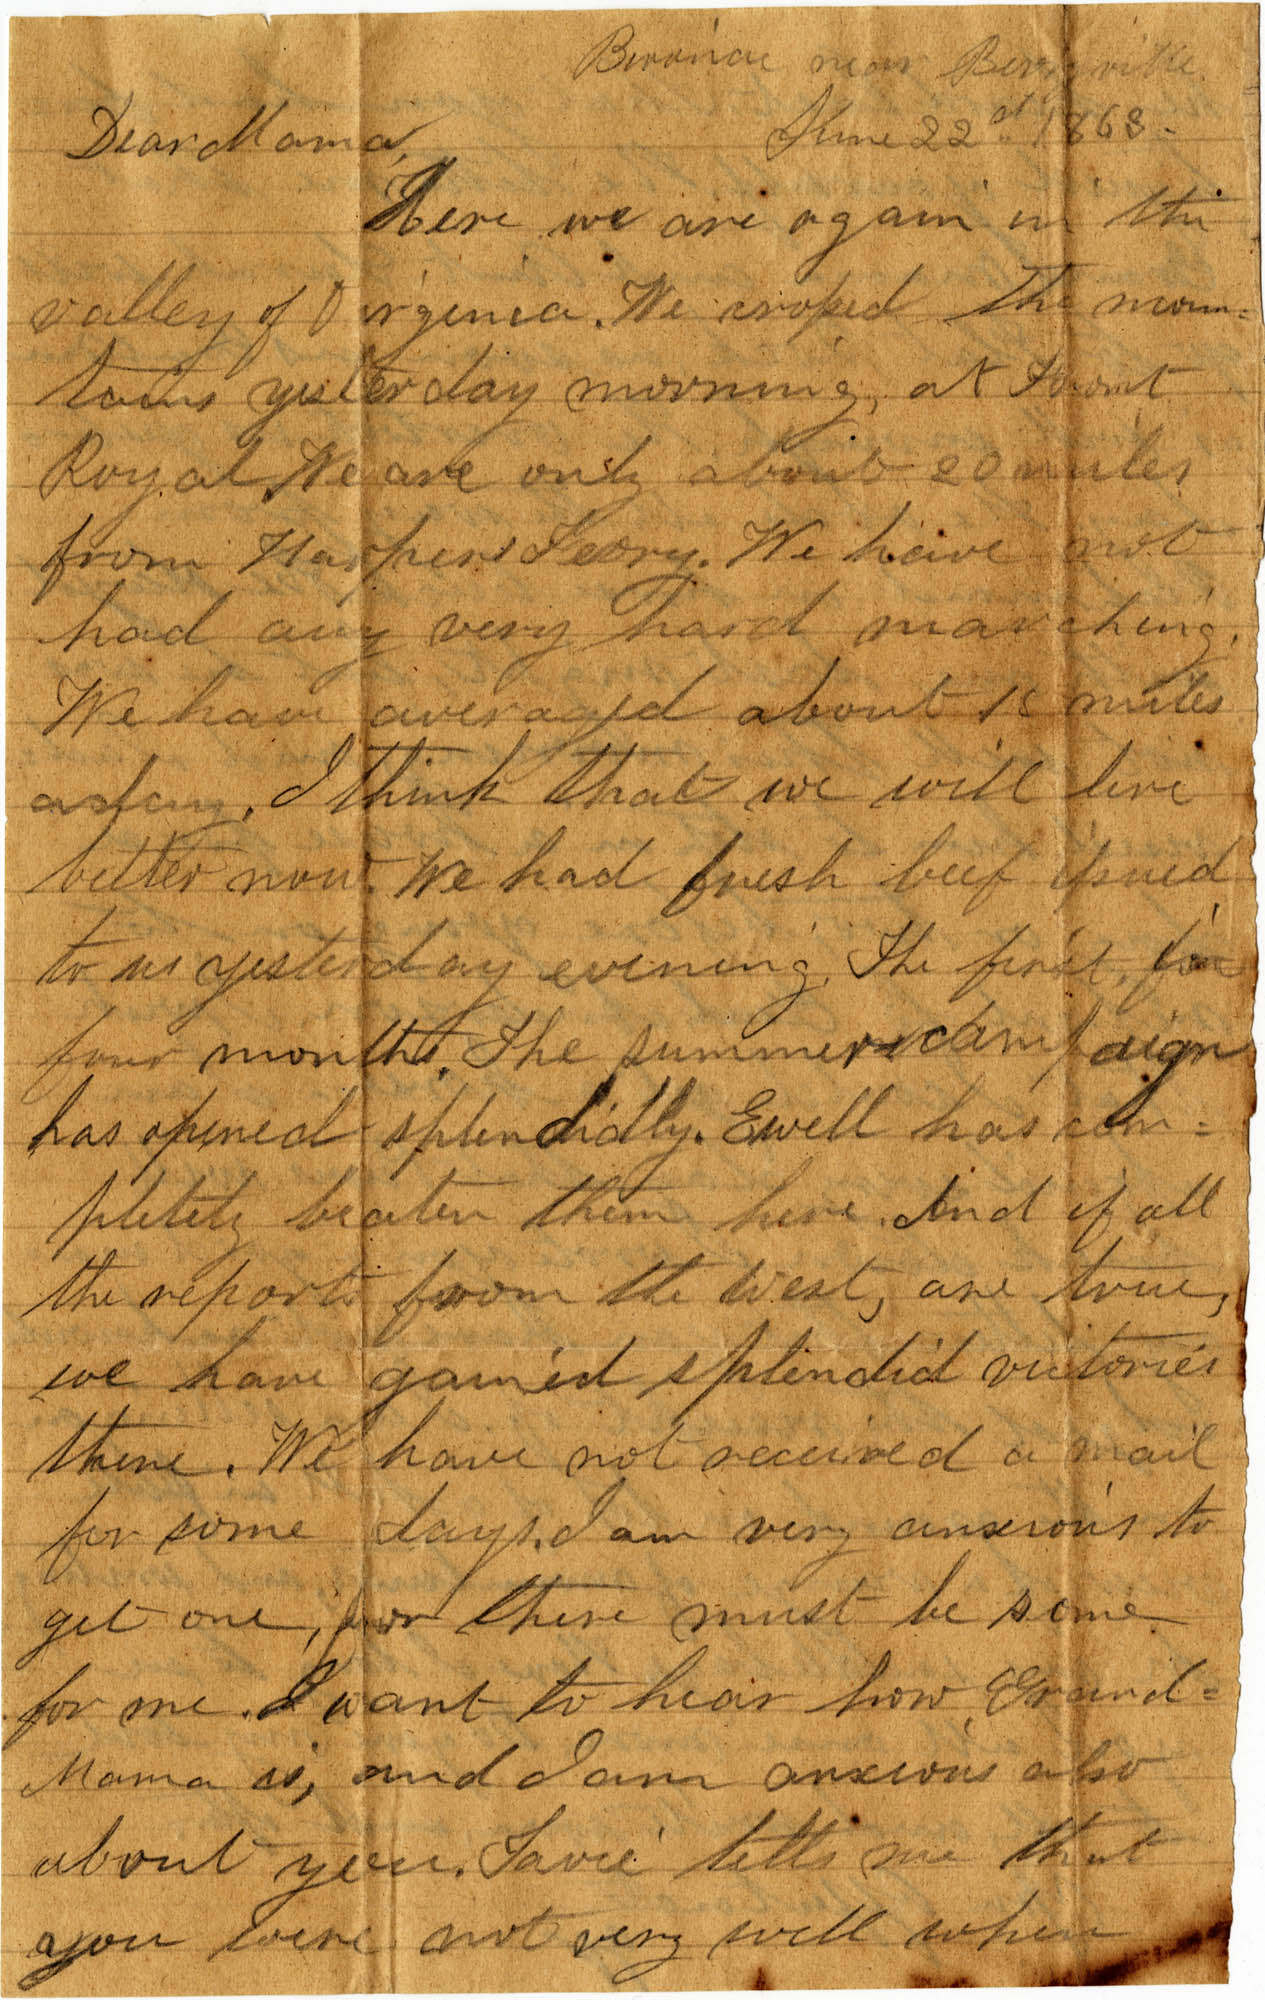 087. Willis Keith to Anna Bell Keith -- June 22, 1863